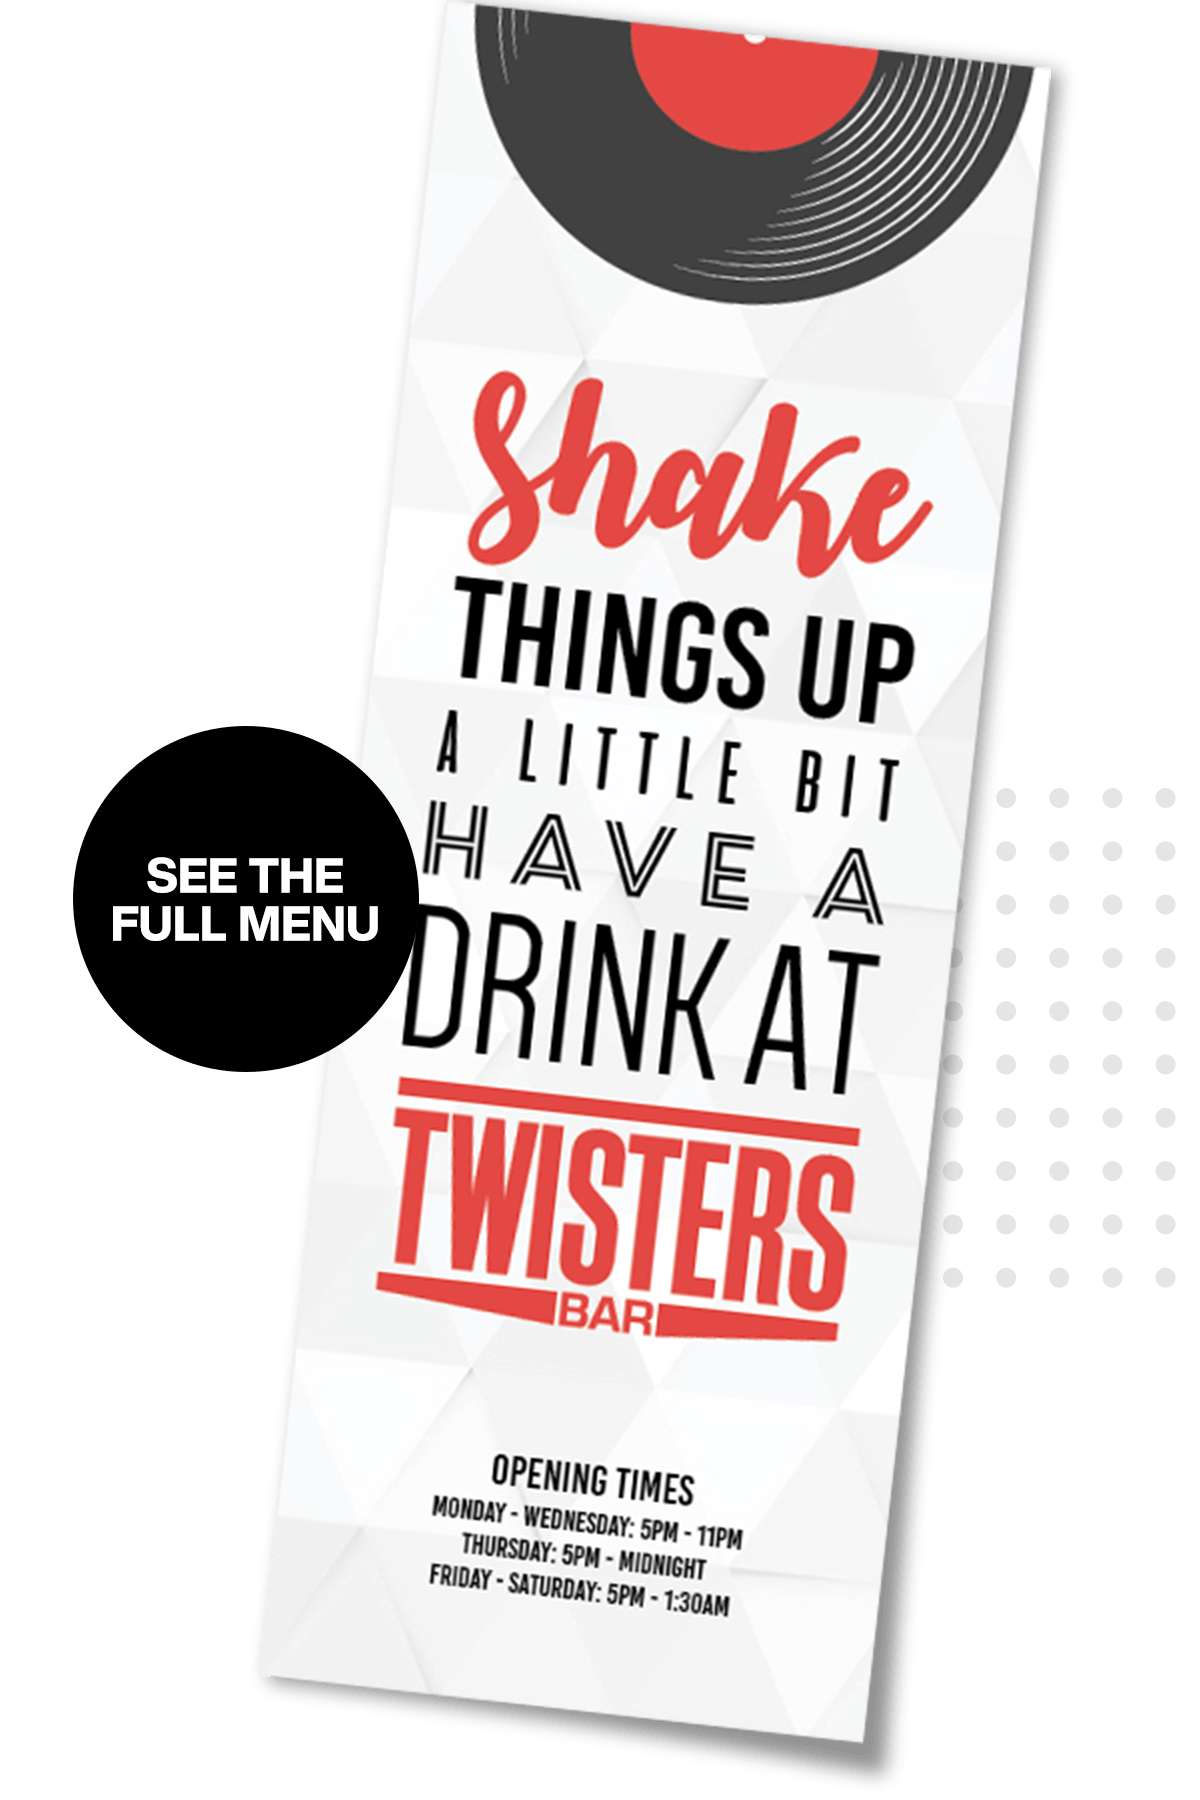 See the Twisters Bar menu